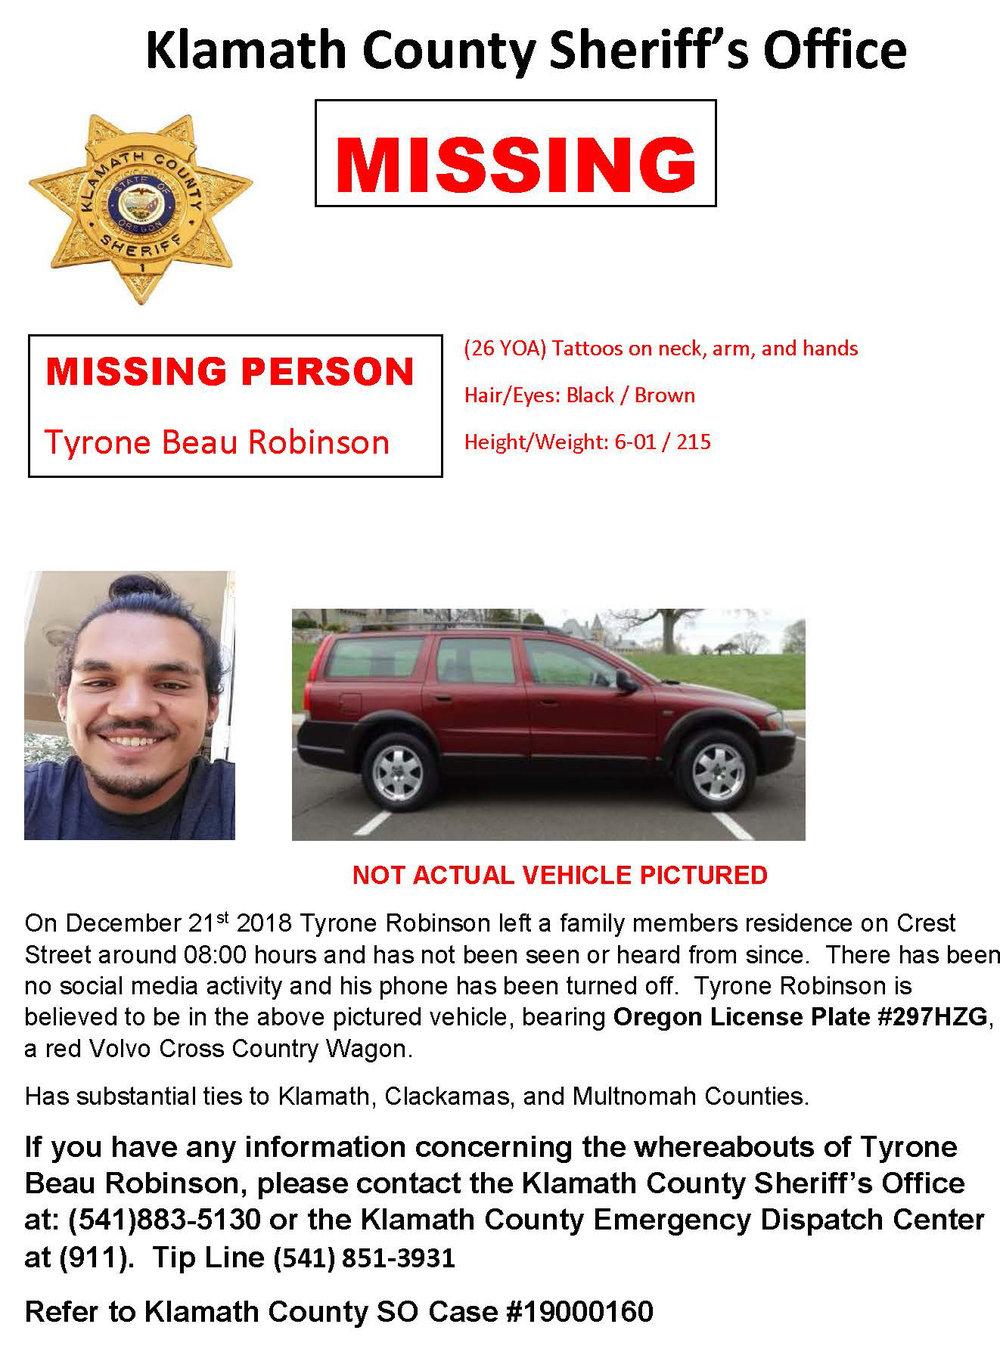 KCSO Missing Person, Tyrone Beau Robinson. Click for larger.